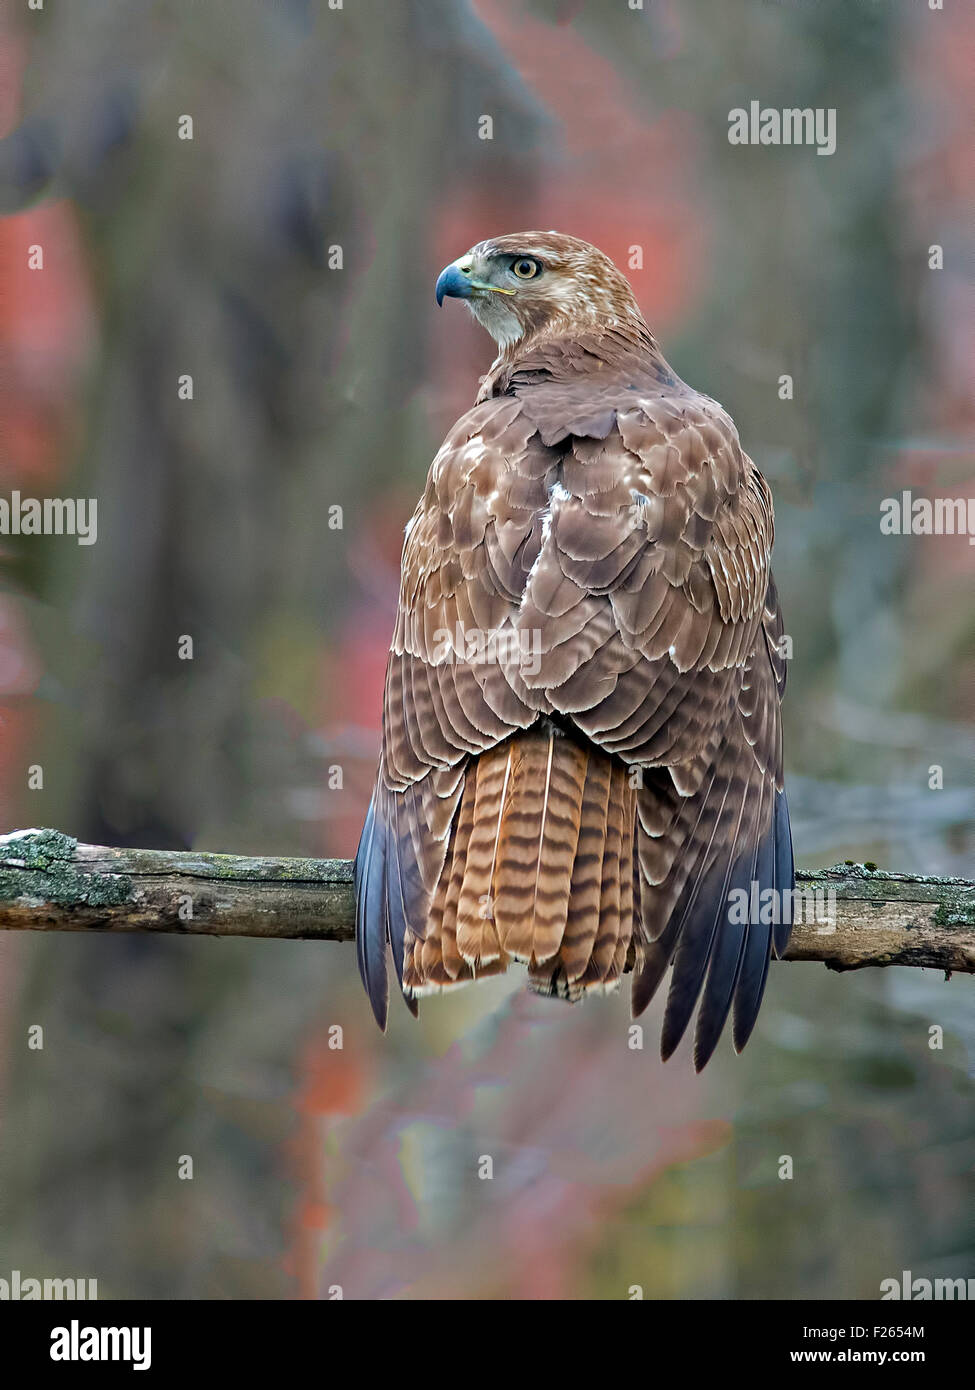 Red-tailed Hawk Back to Camera Rear View - Stock Image